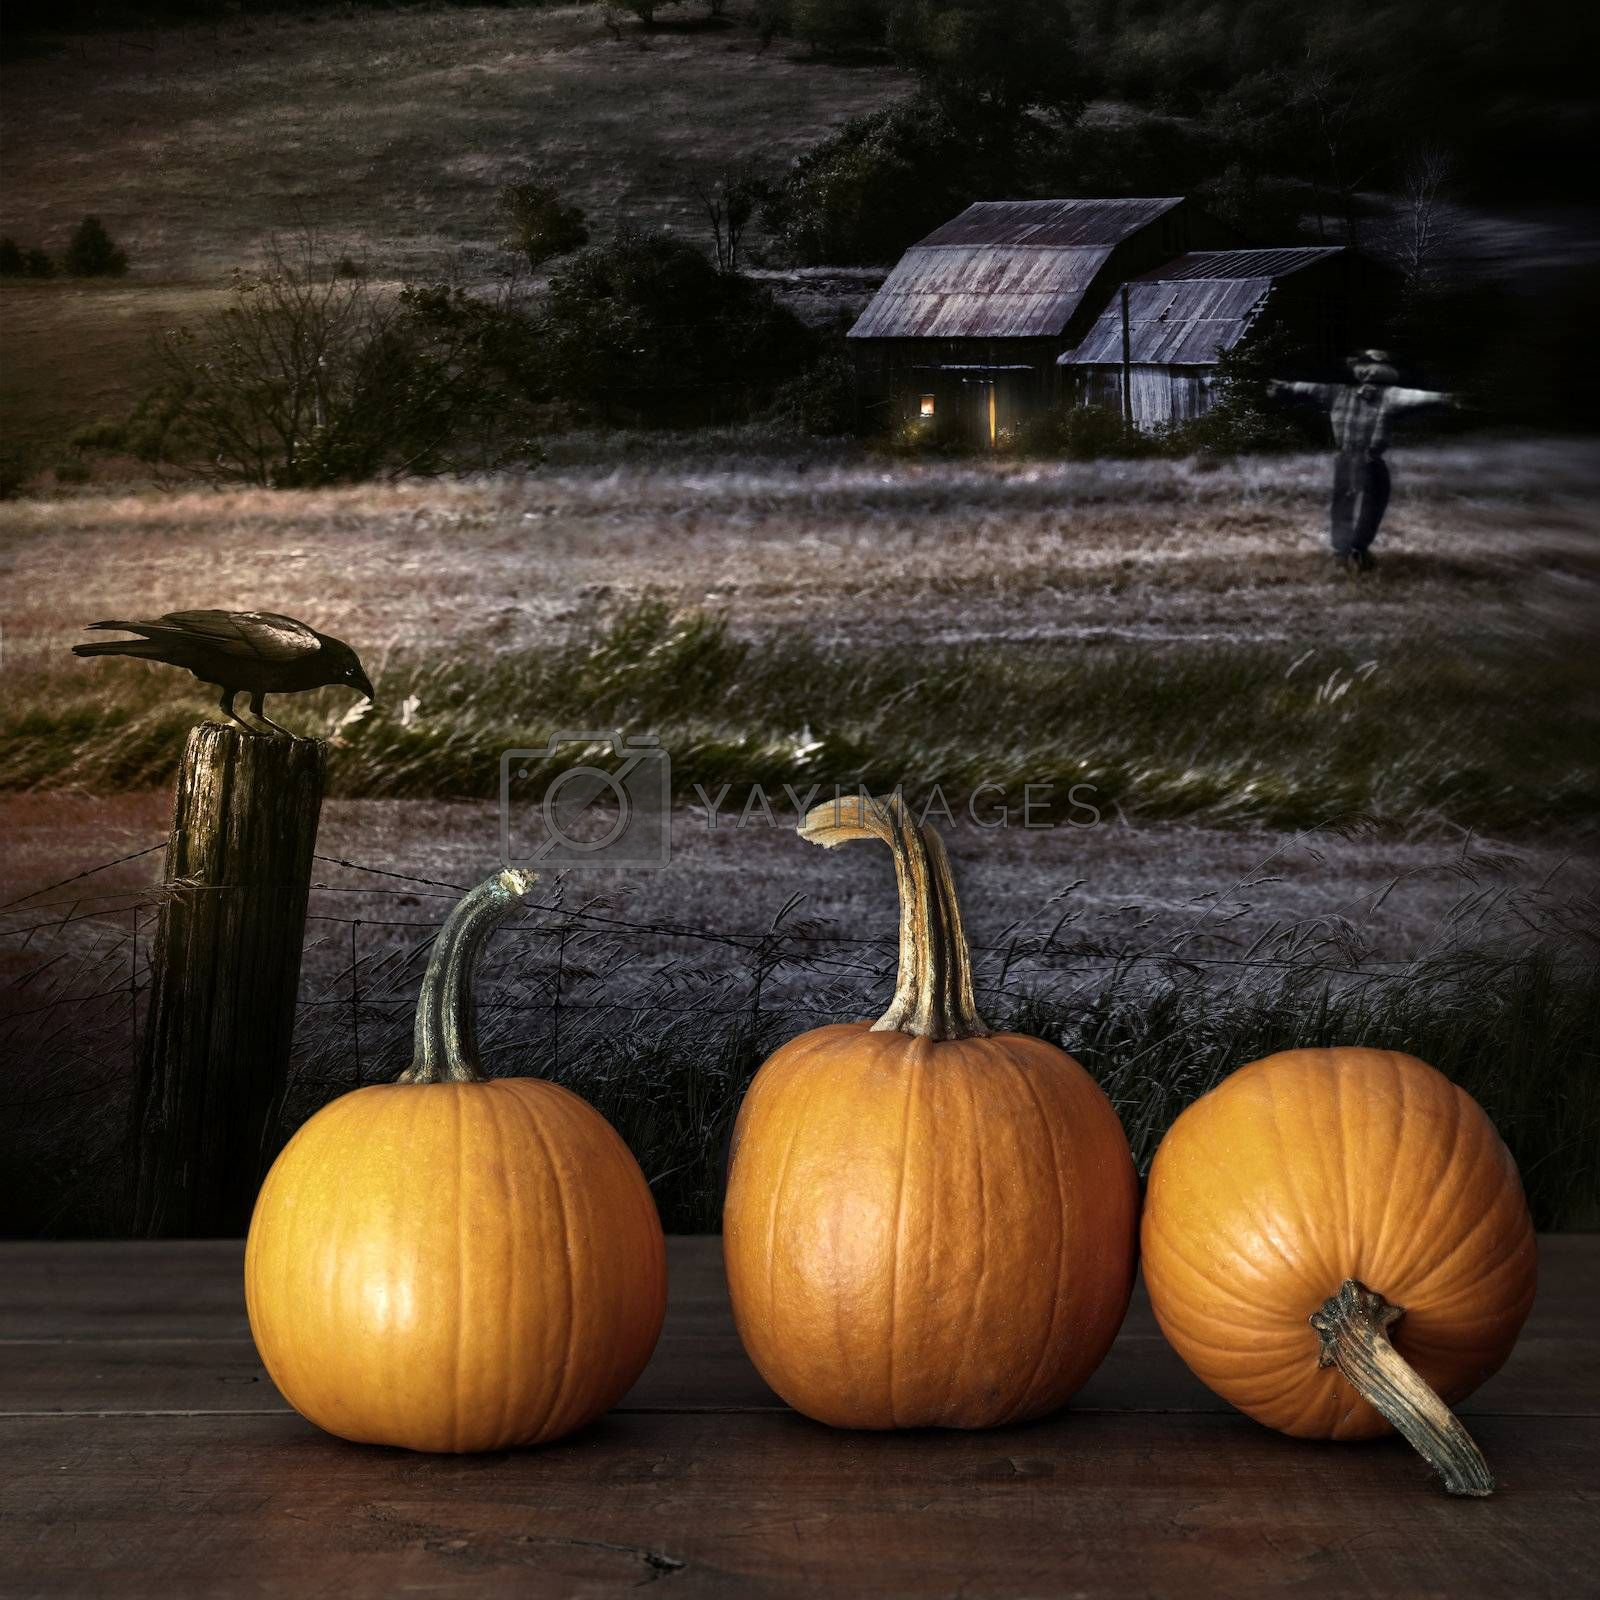 Pumpkins left on table at night